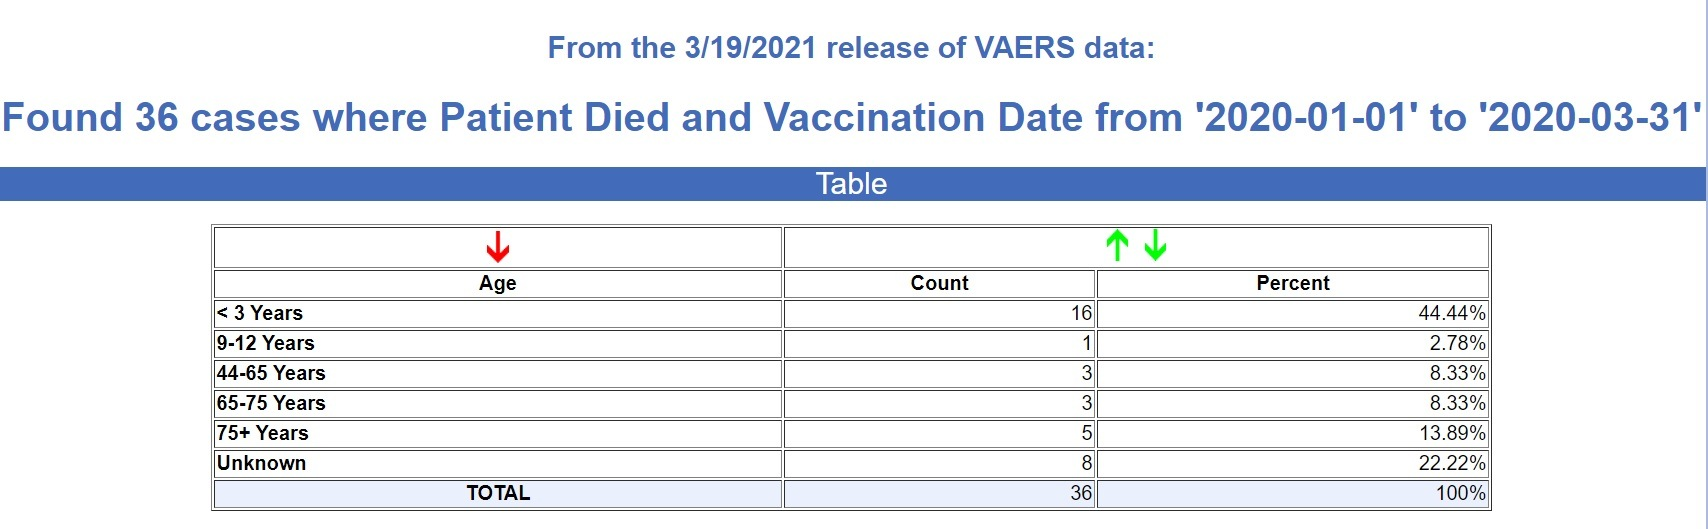 1st-quarter-deaths-vaccines-2020 6000% Increase in Reported Vaccine Deaths 1st Quarter 2021 Compared to 1st Quarter 2020